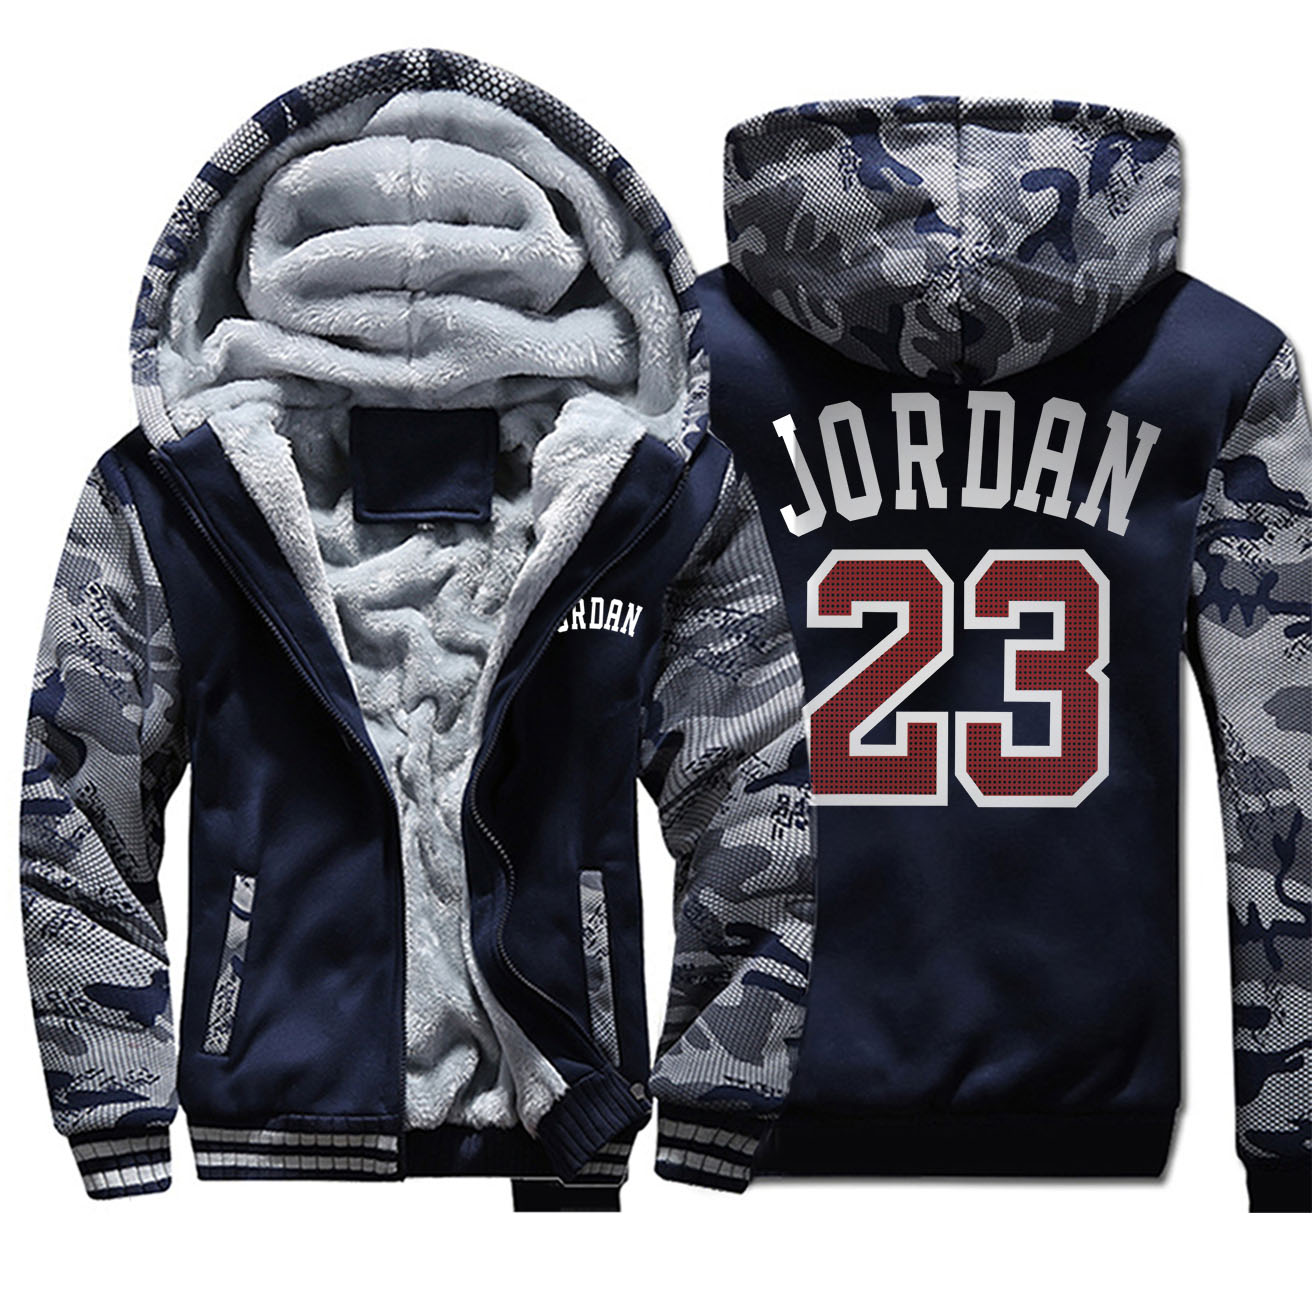 Jordan 23 Print Zipper Hoodie Men 2020 Winter Warm Fleece Hooded Sweatshirts Plus Size Fashion Brand Jackets Mens Thick Camo